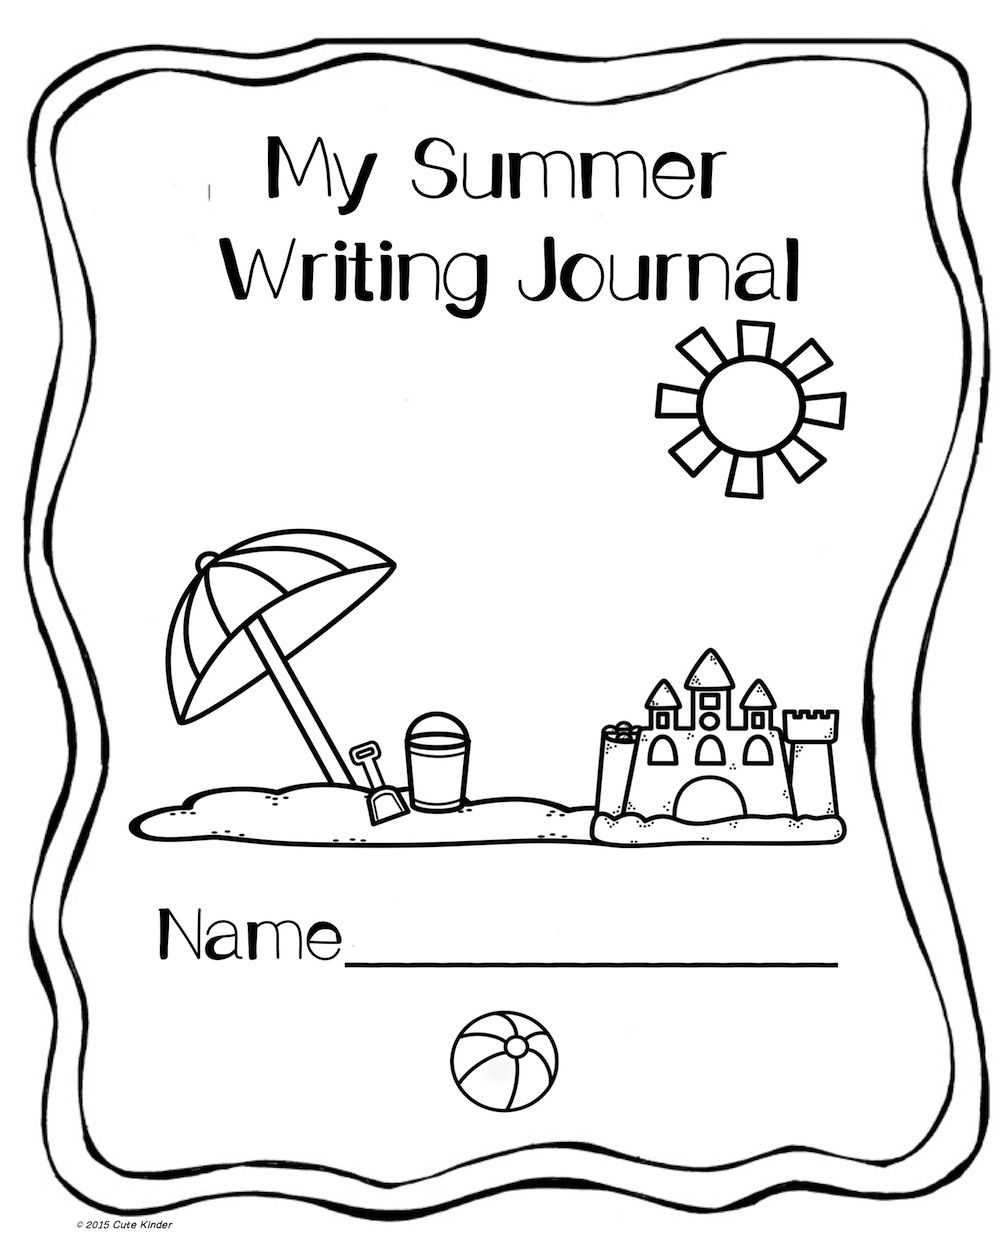 Writing Book Cover Printable ~ Summer writing free printables for journal covers